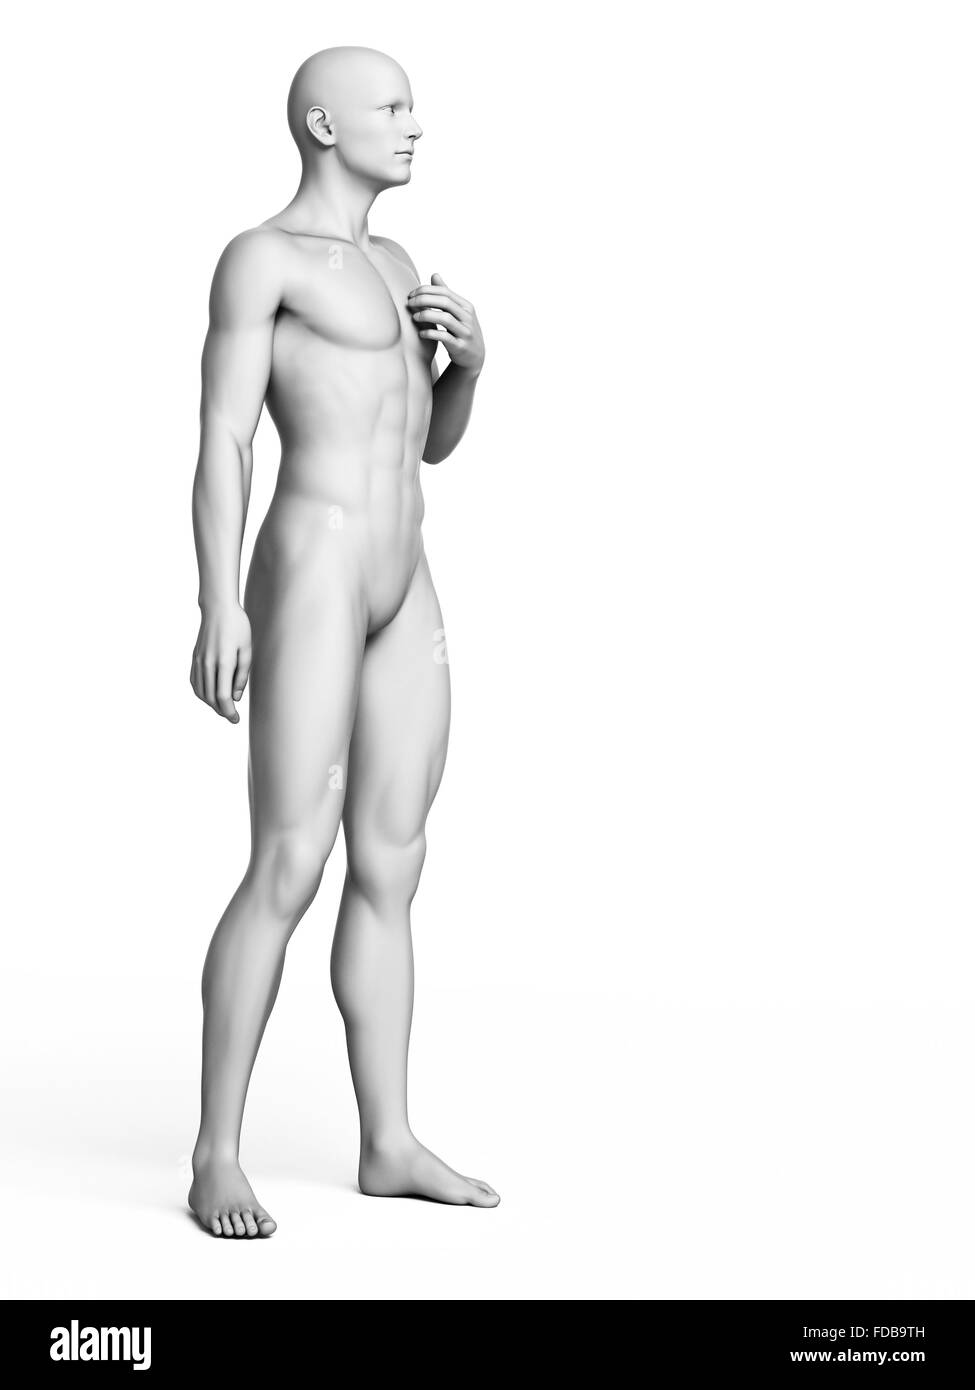 Anatomy Man Standing Illustration Black and White Stock Photos ...